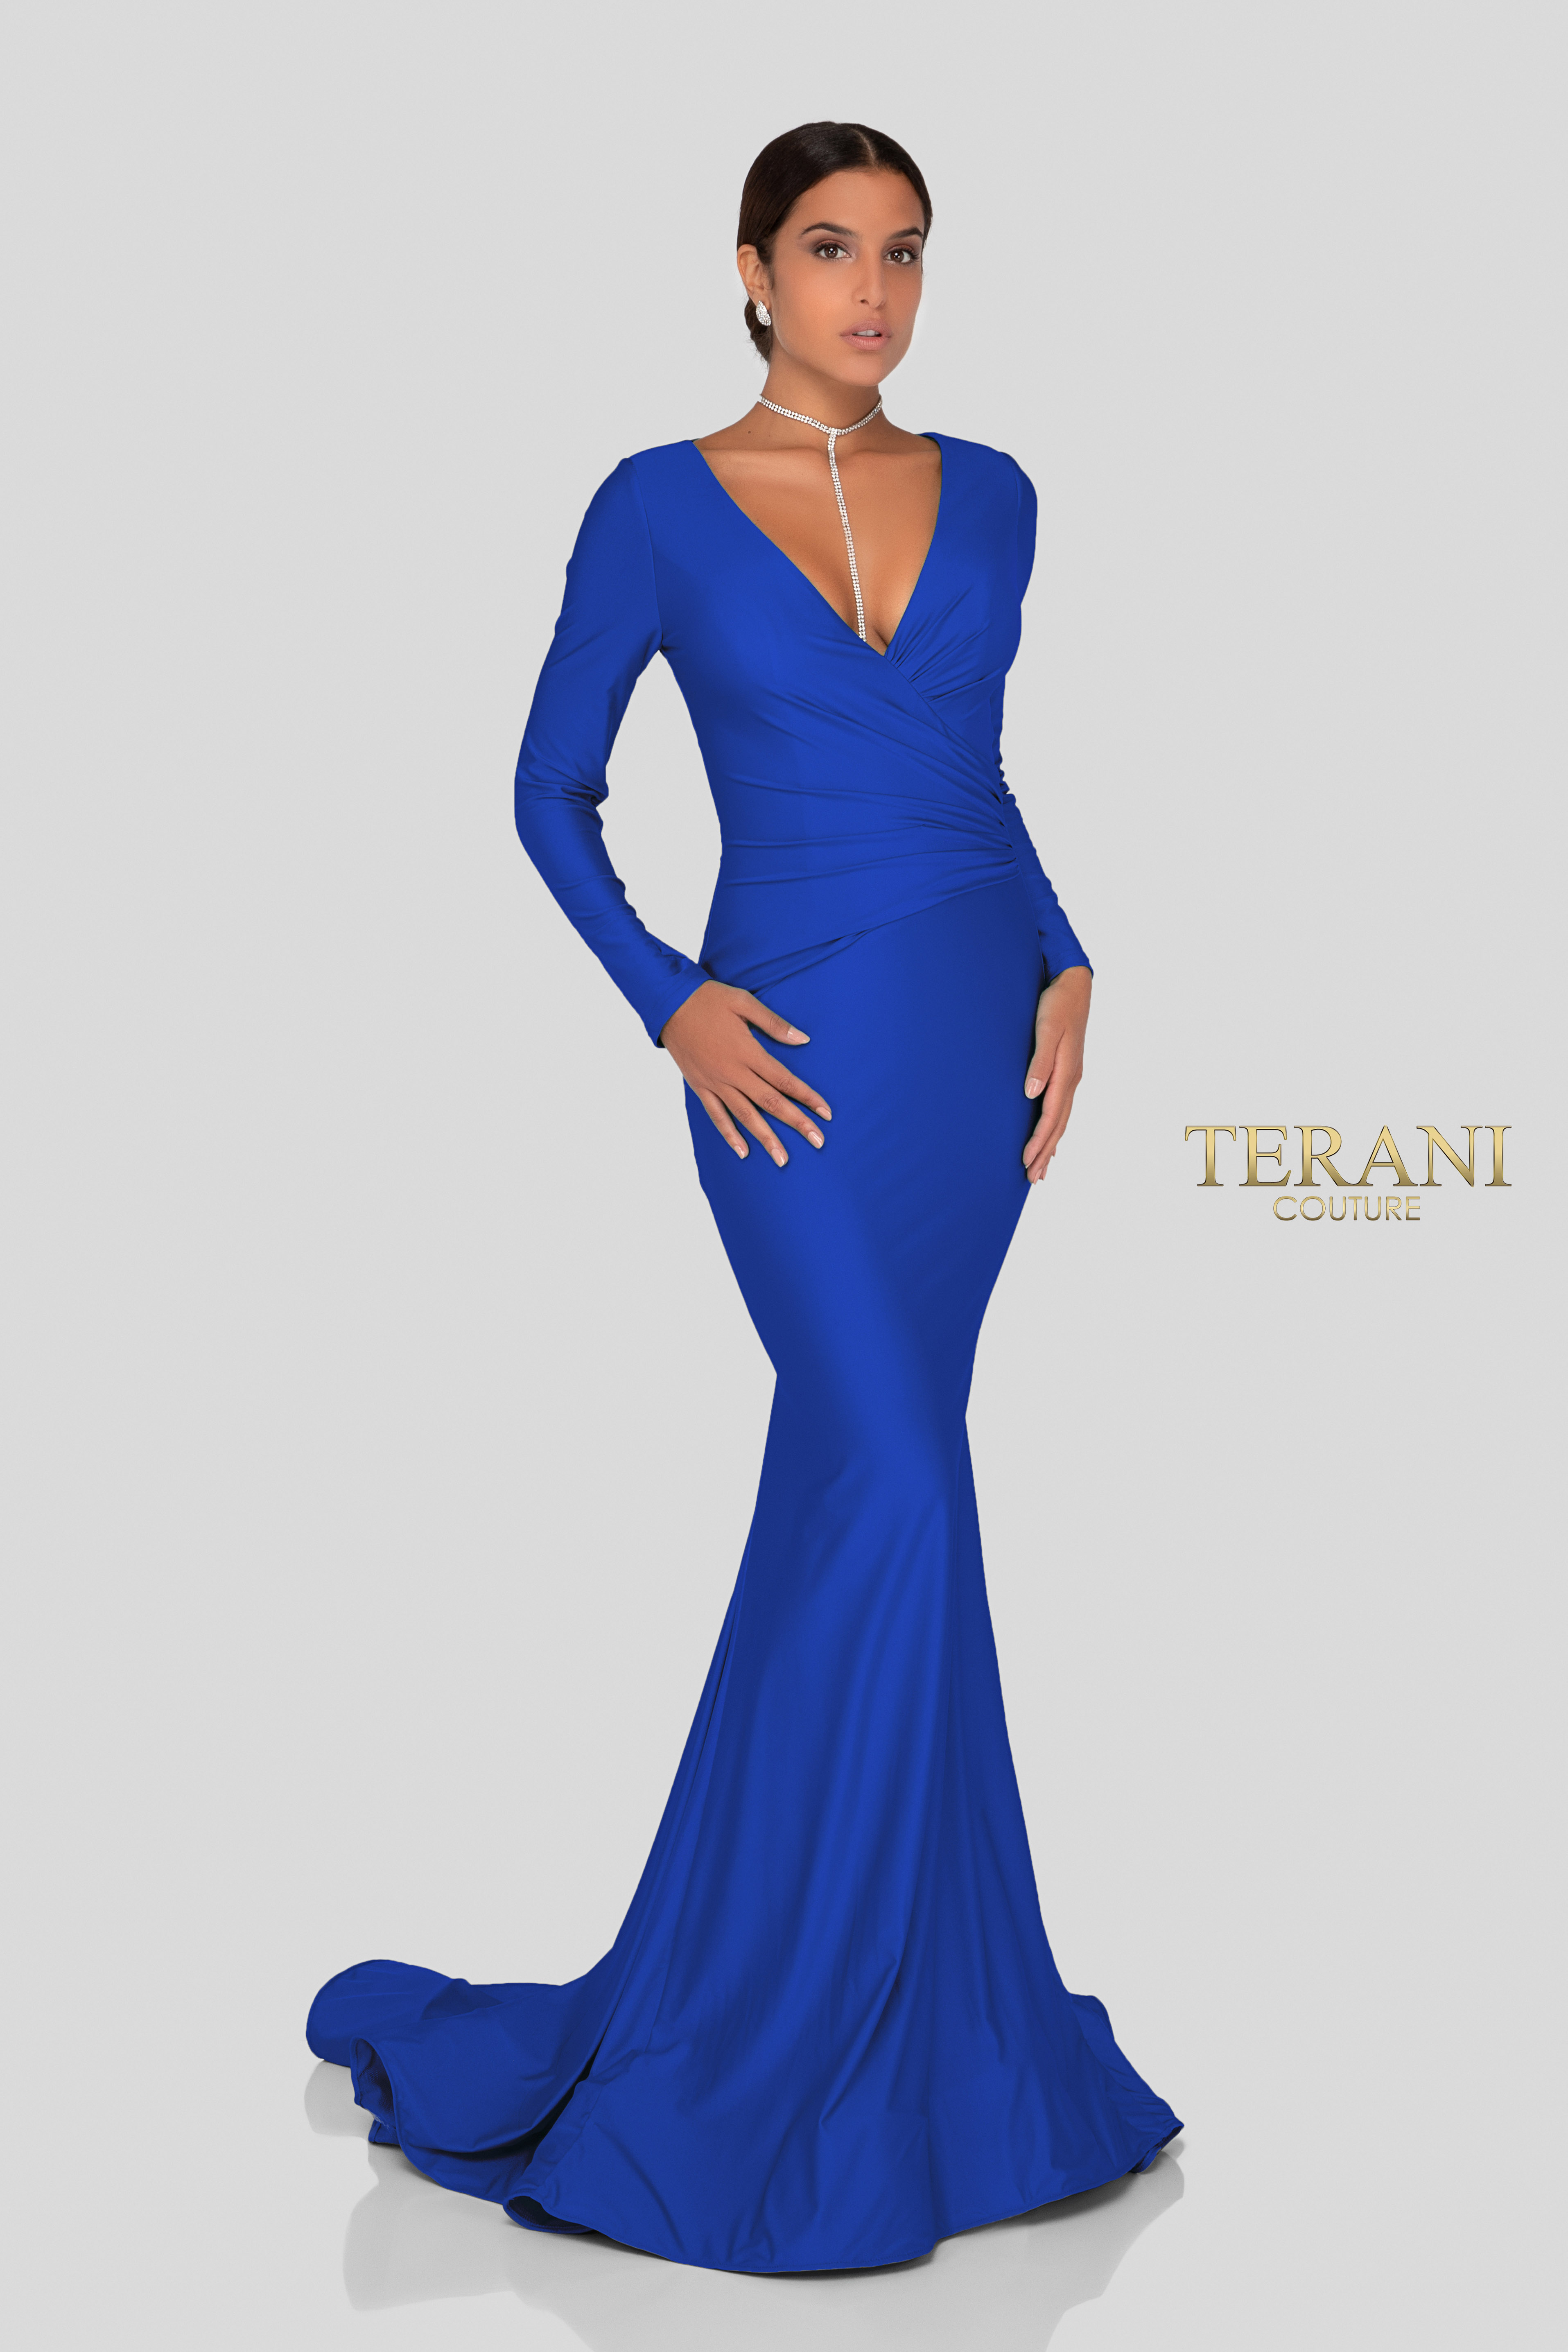 860ab239cc6f Terani Couture Long Sleeve Gown